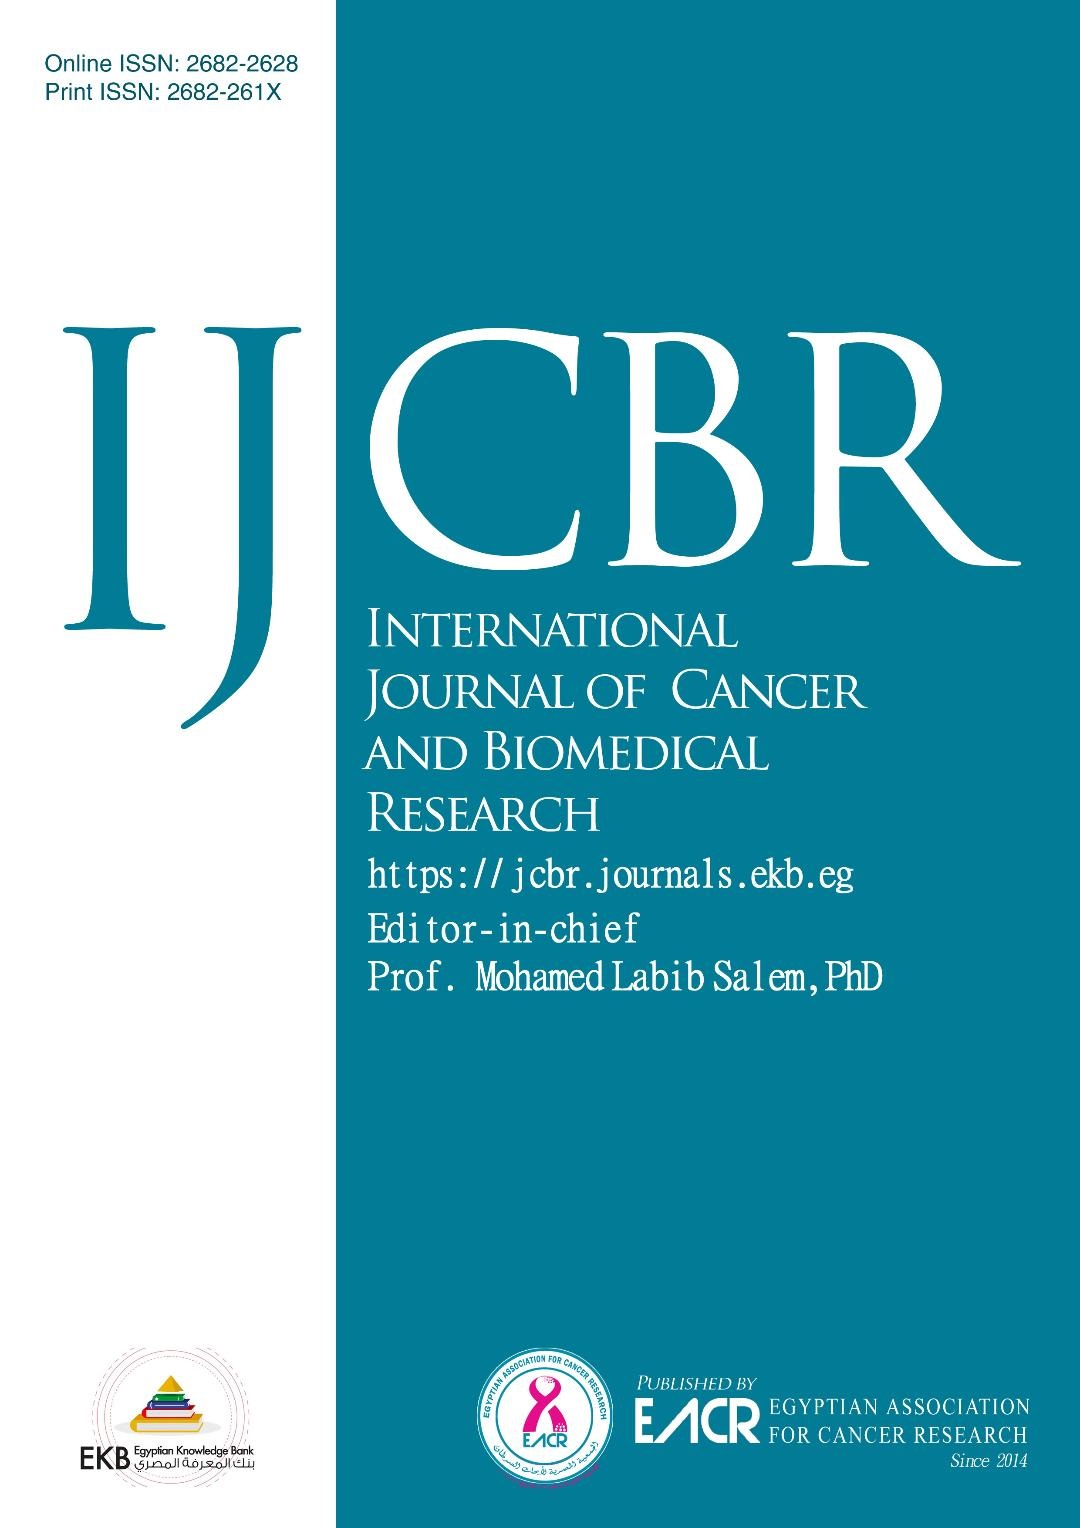 International Journal of Cancer and Biomedical Research